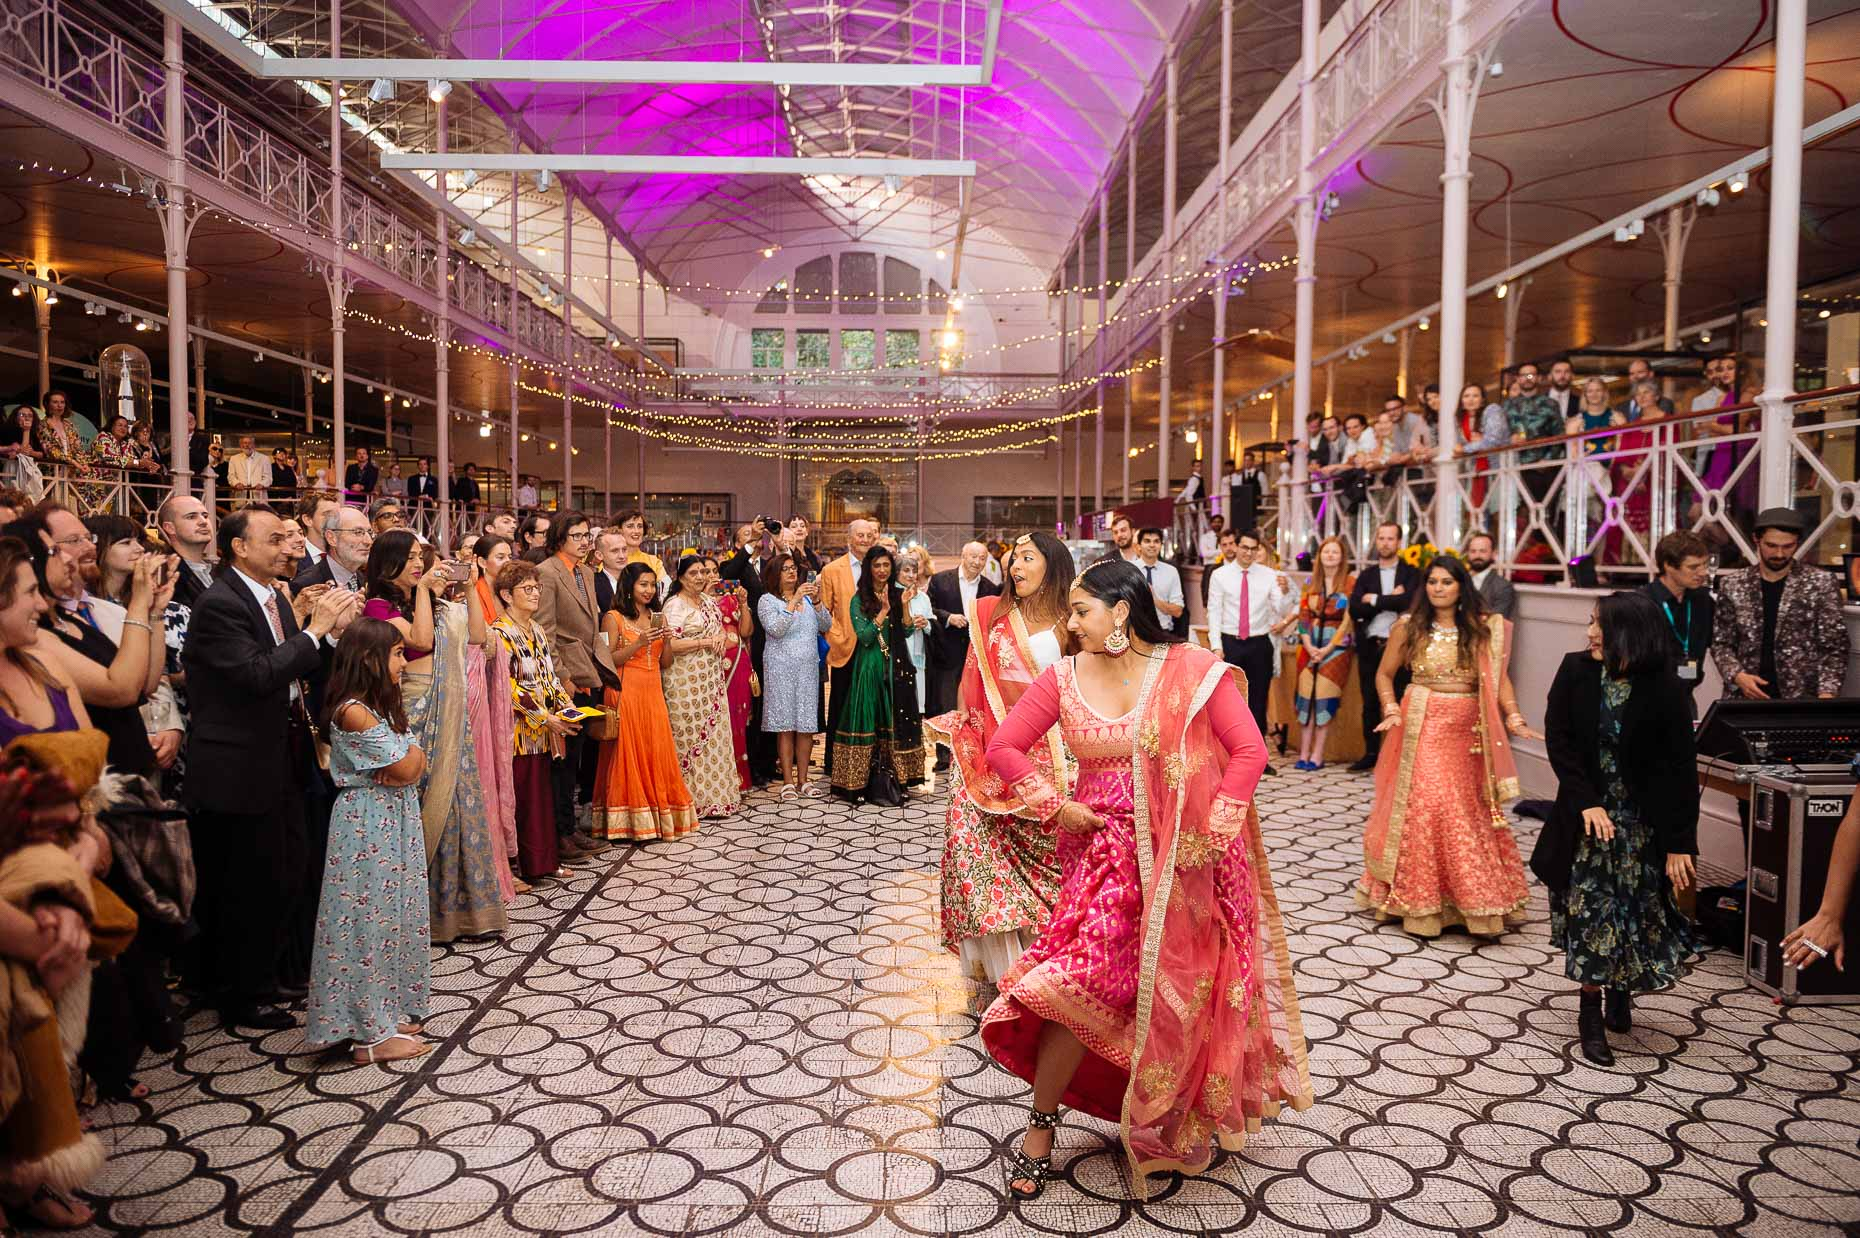 pooja-dan-v-and-a-museum-dancefloor-asian-wedding-photography-22